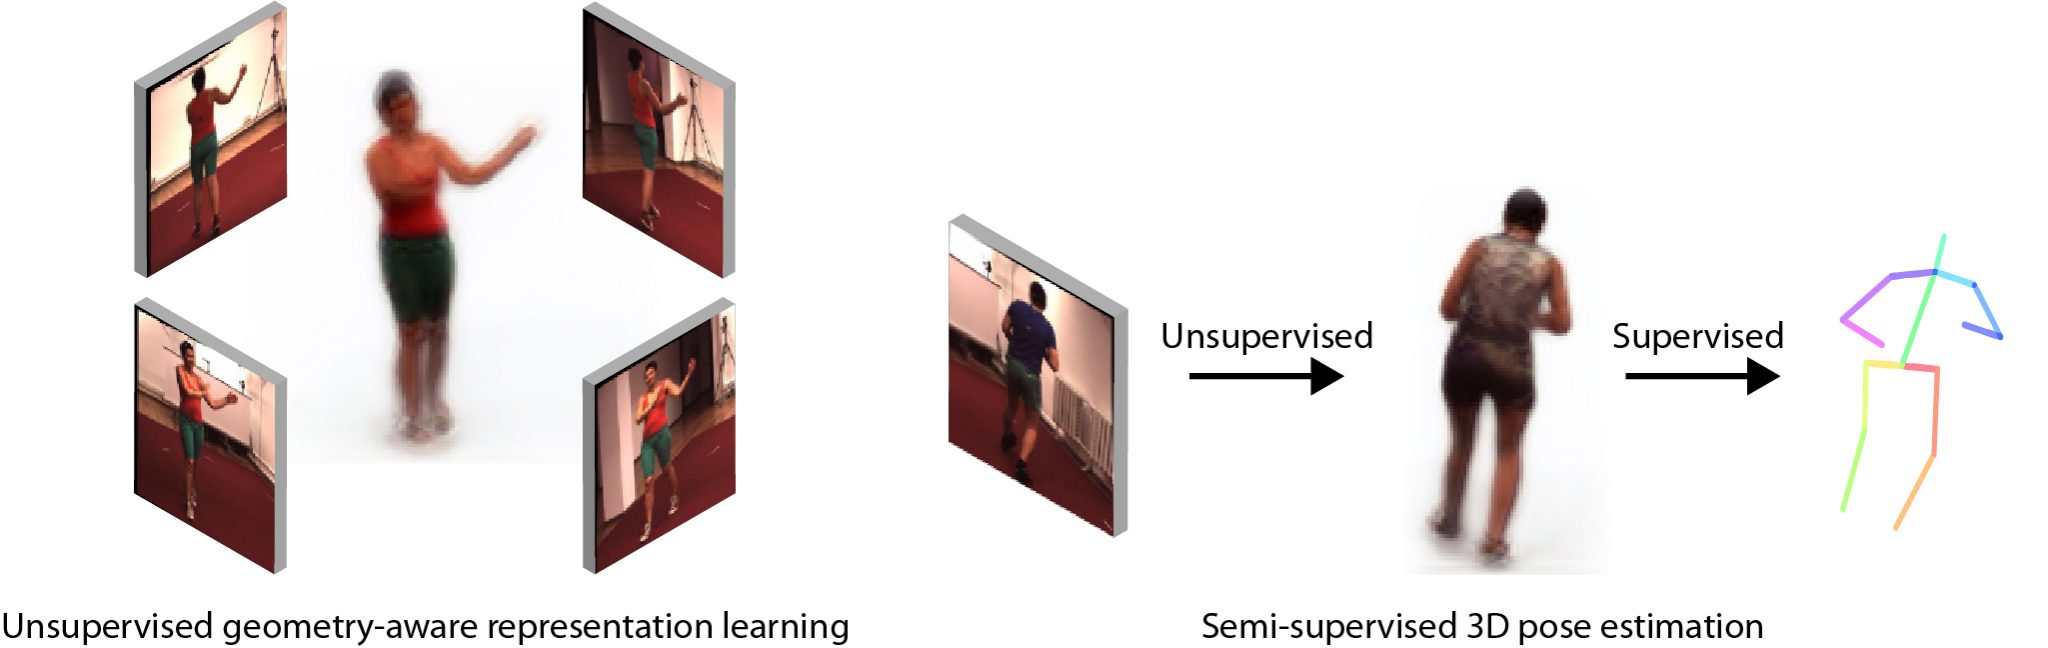 Learning an unsupervised representation